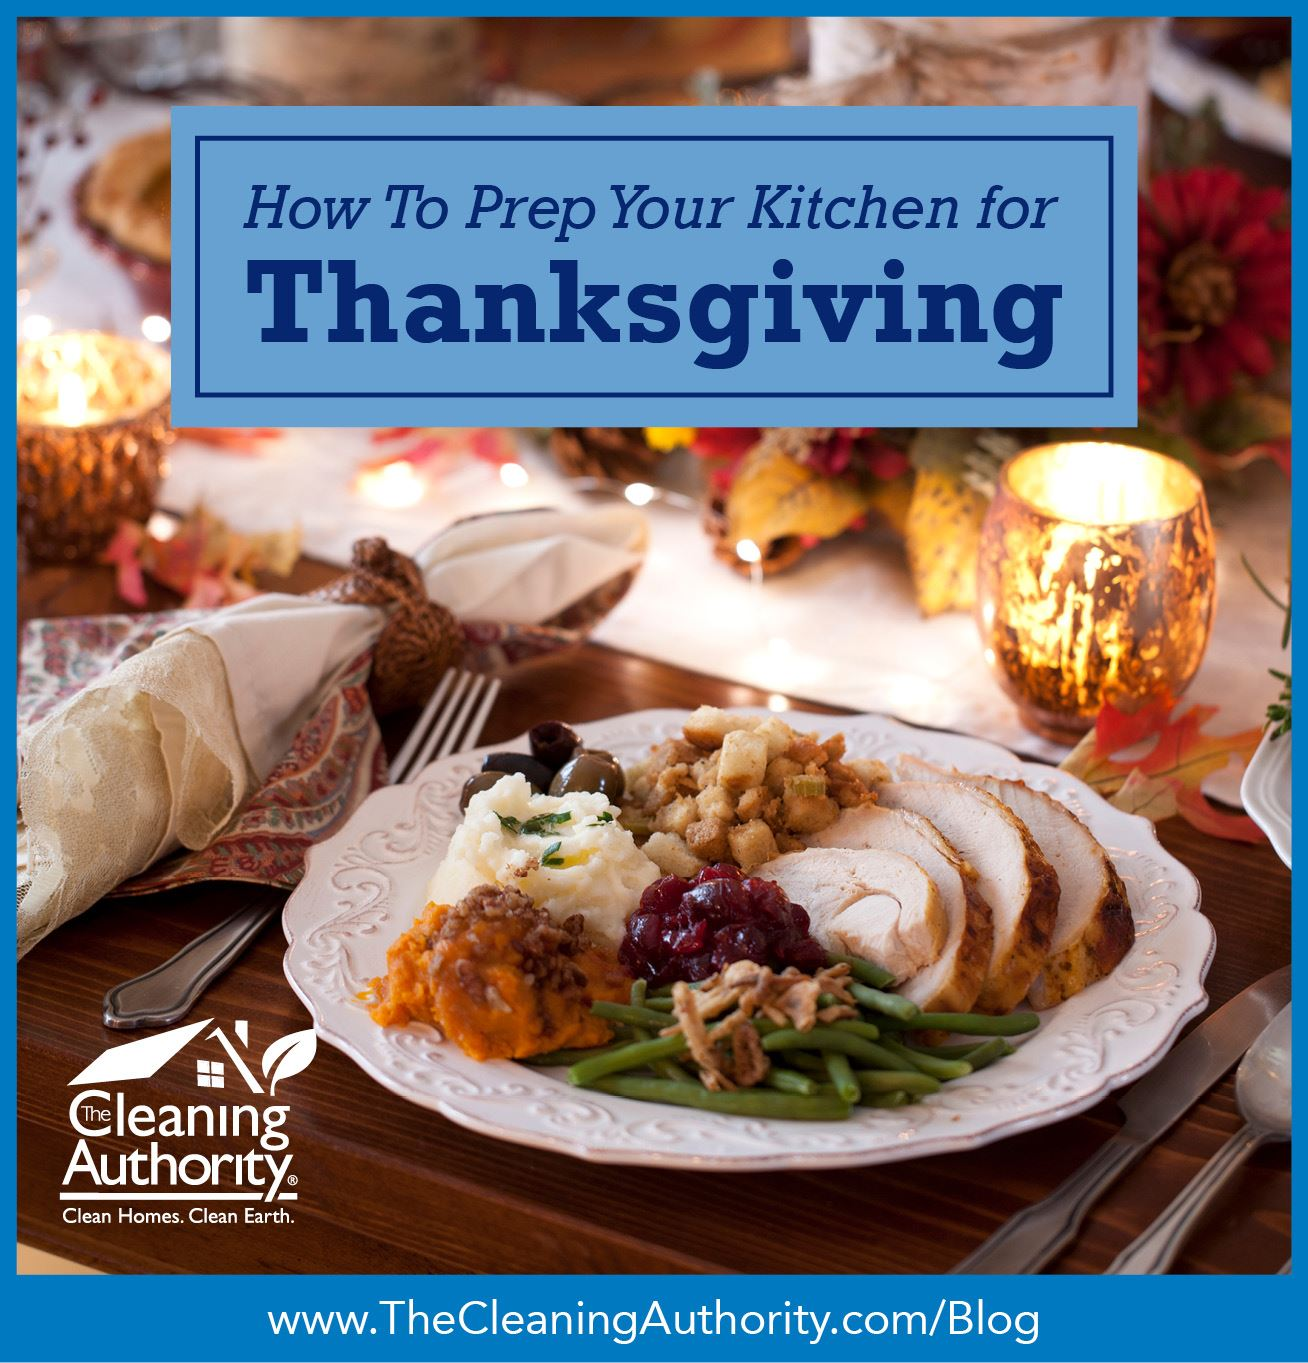 How to Prep Your Kitchen for Thanksgiving